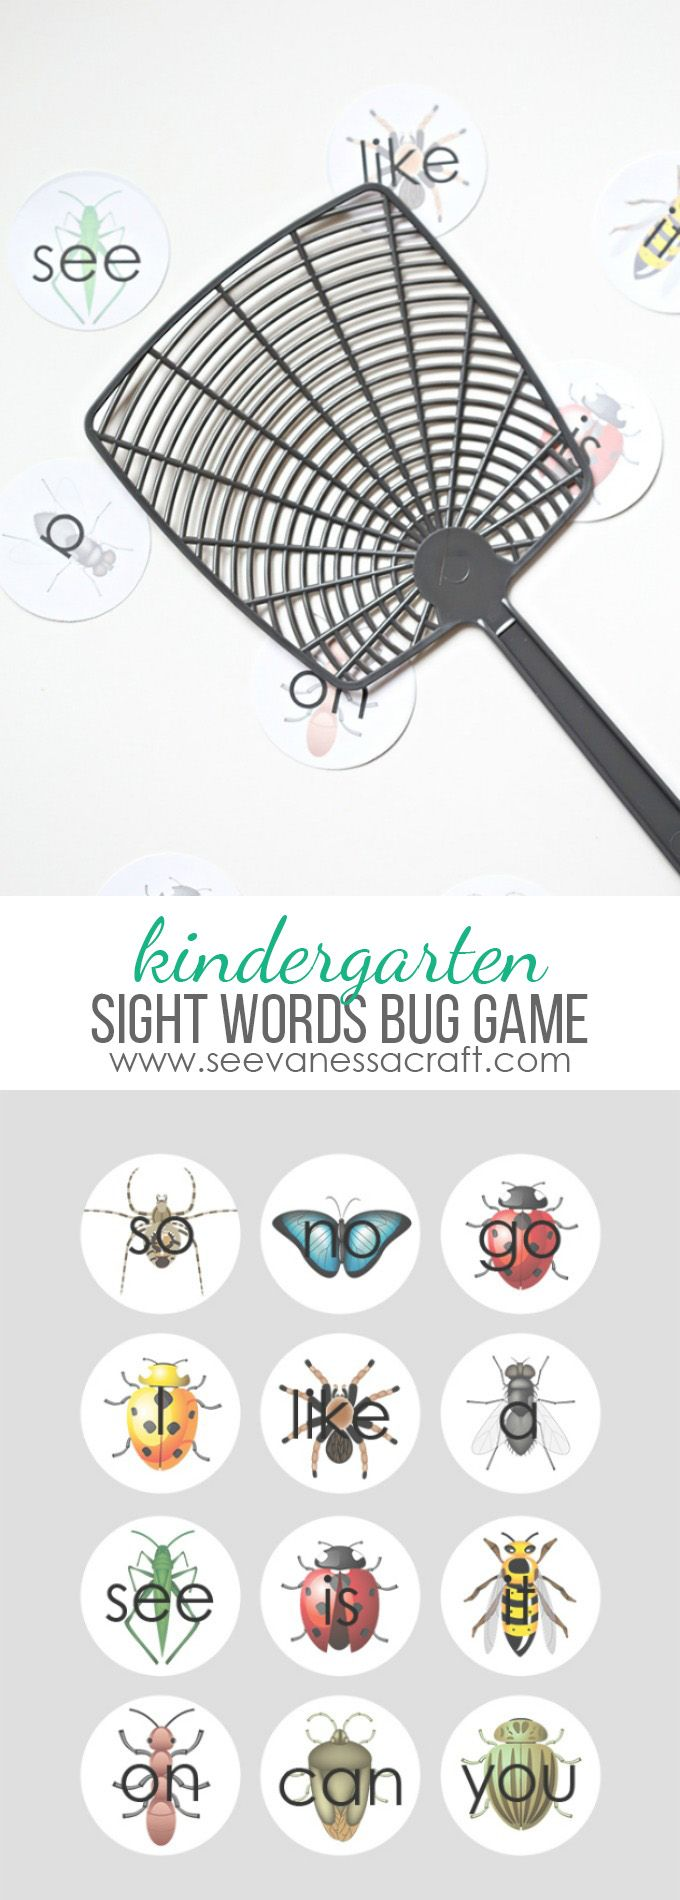 Printable: Sight Words Bug Game for Kindergarten | Frühling, Ostern ...